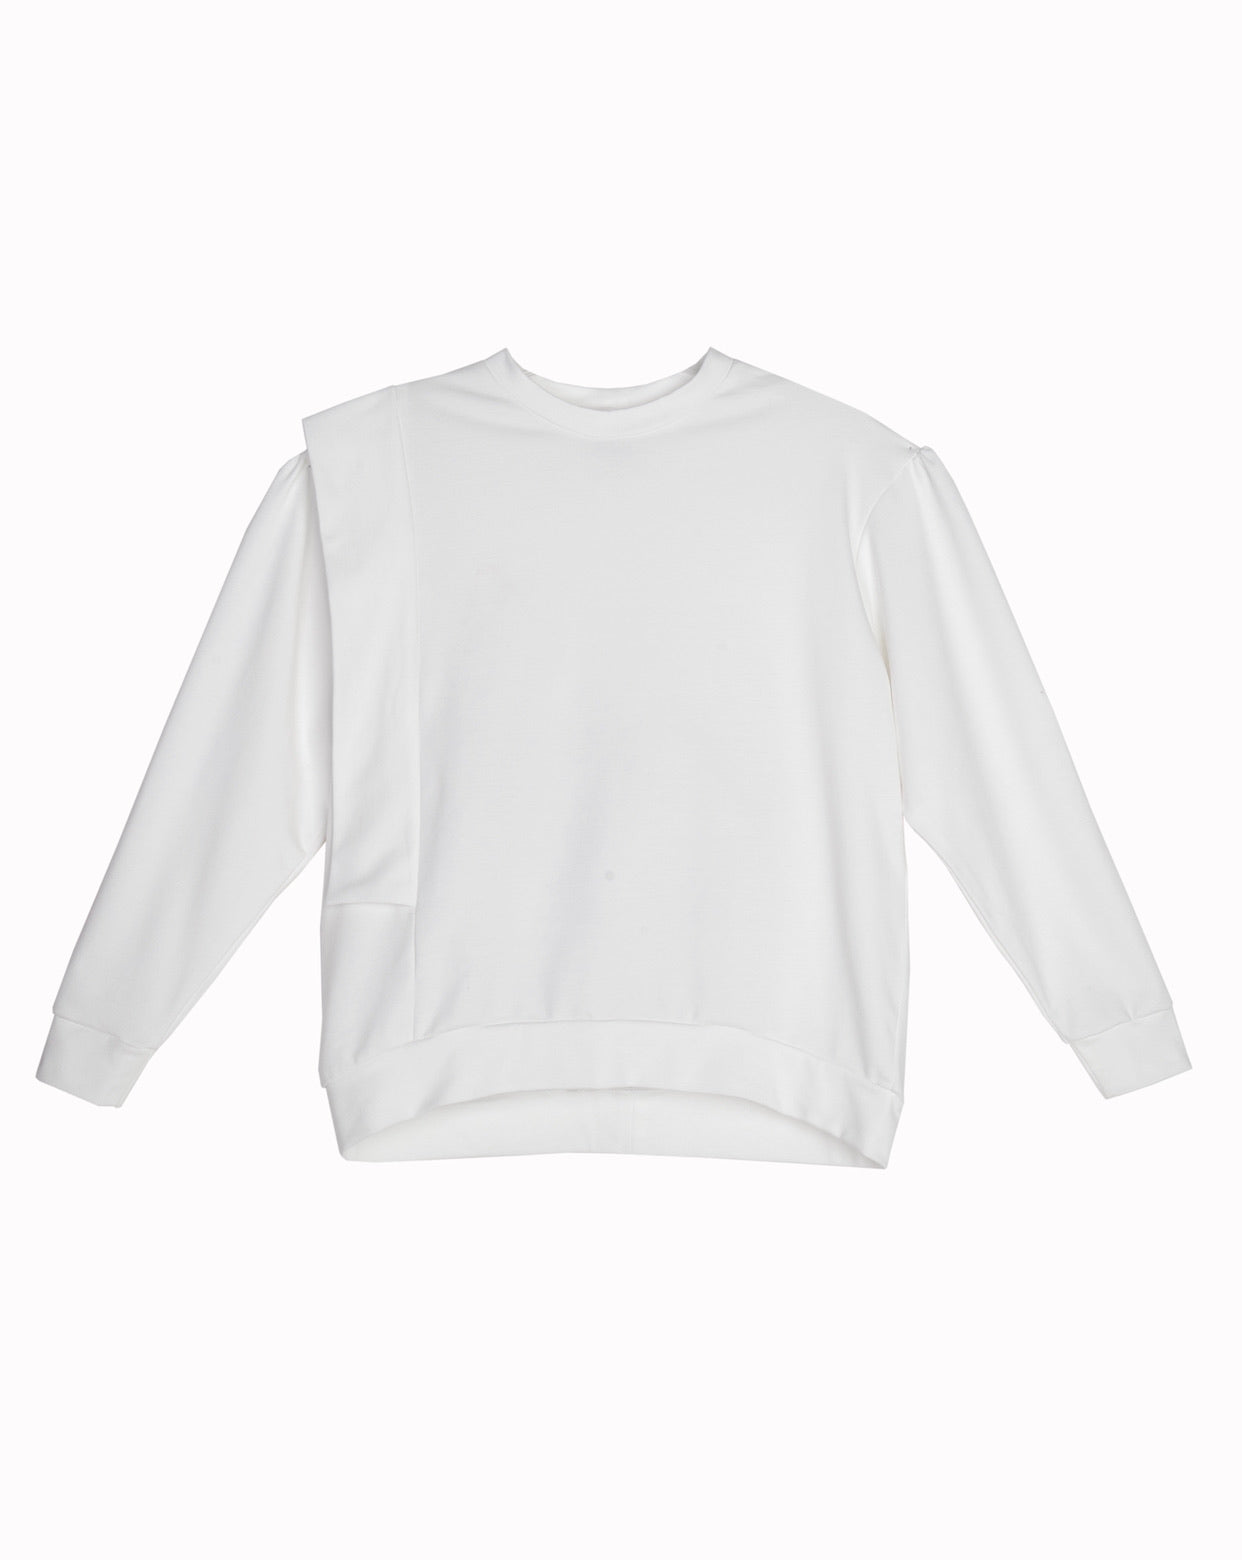 Sweatshirt with ornament. Ecru organic cotton.